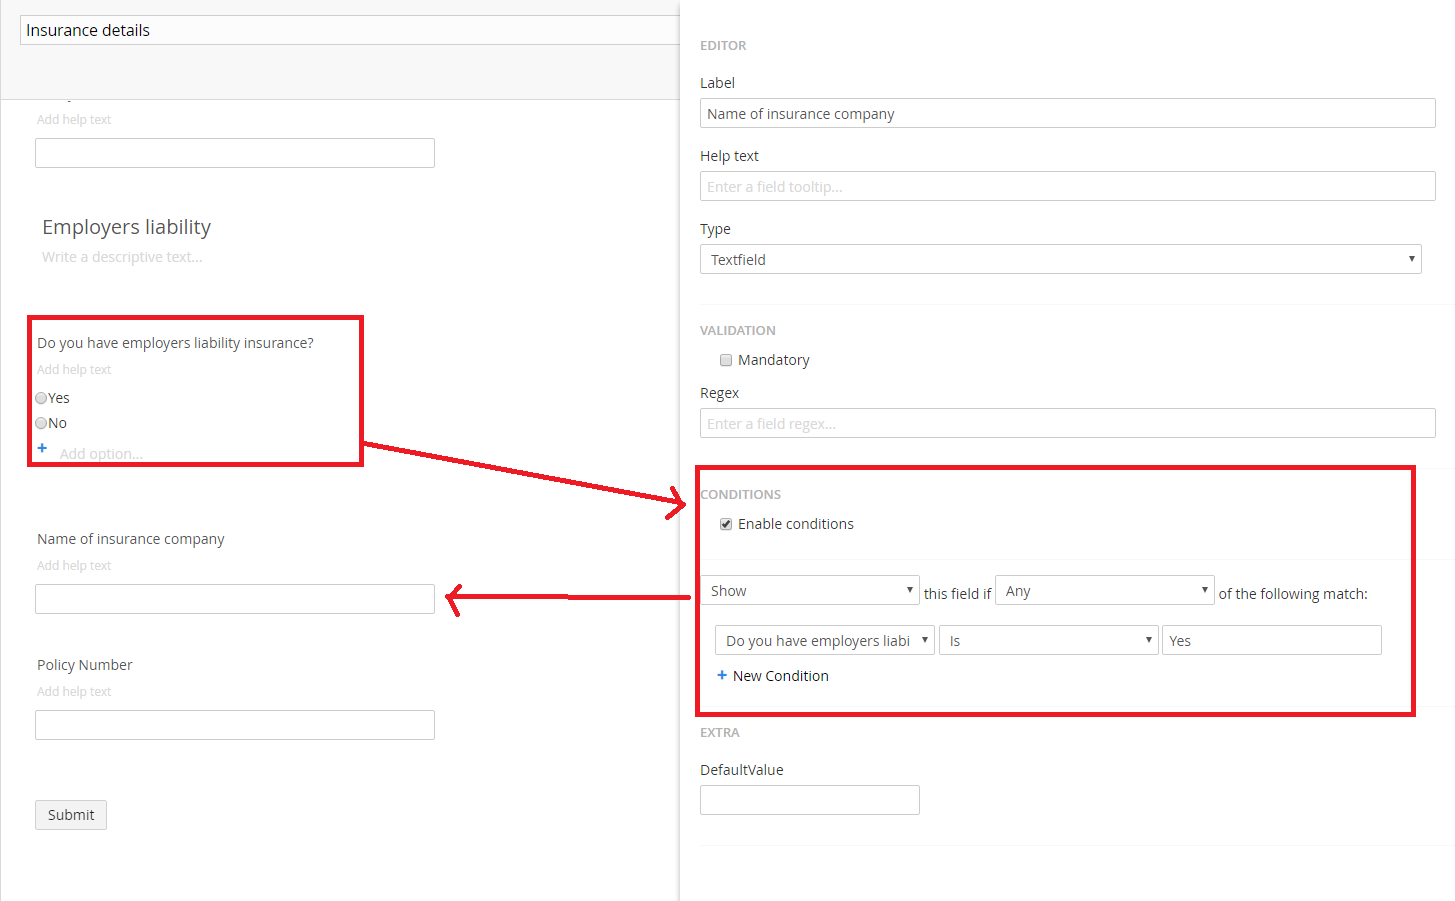 umbraco forms conditionals not working - Umbraco Forms - our ...